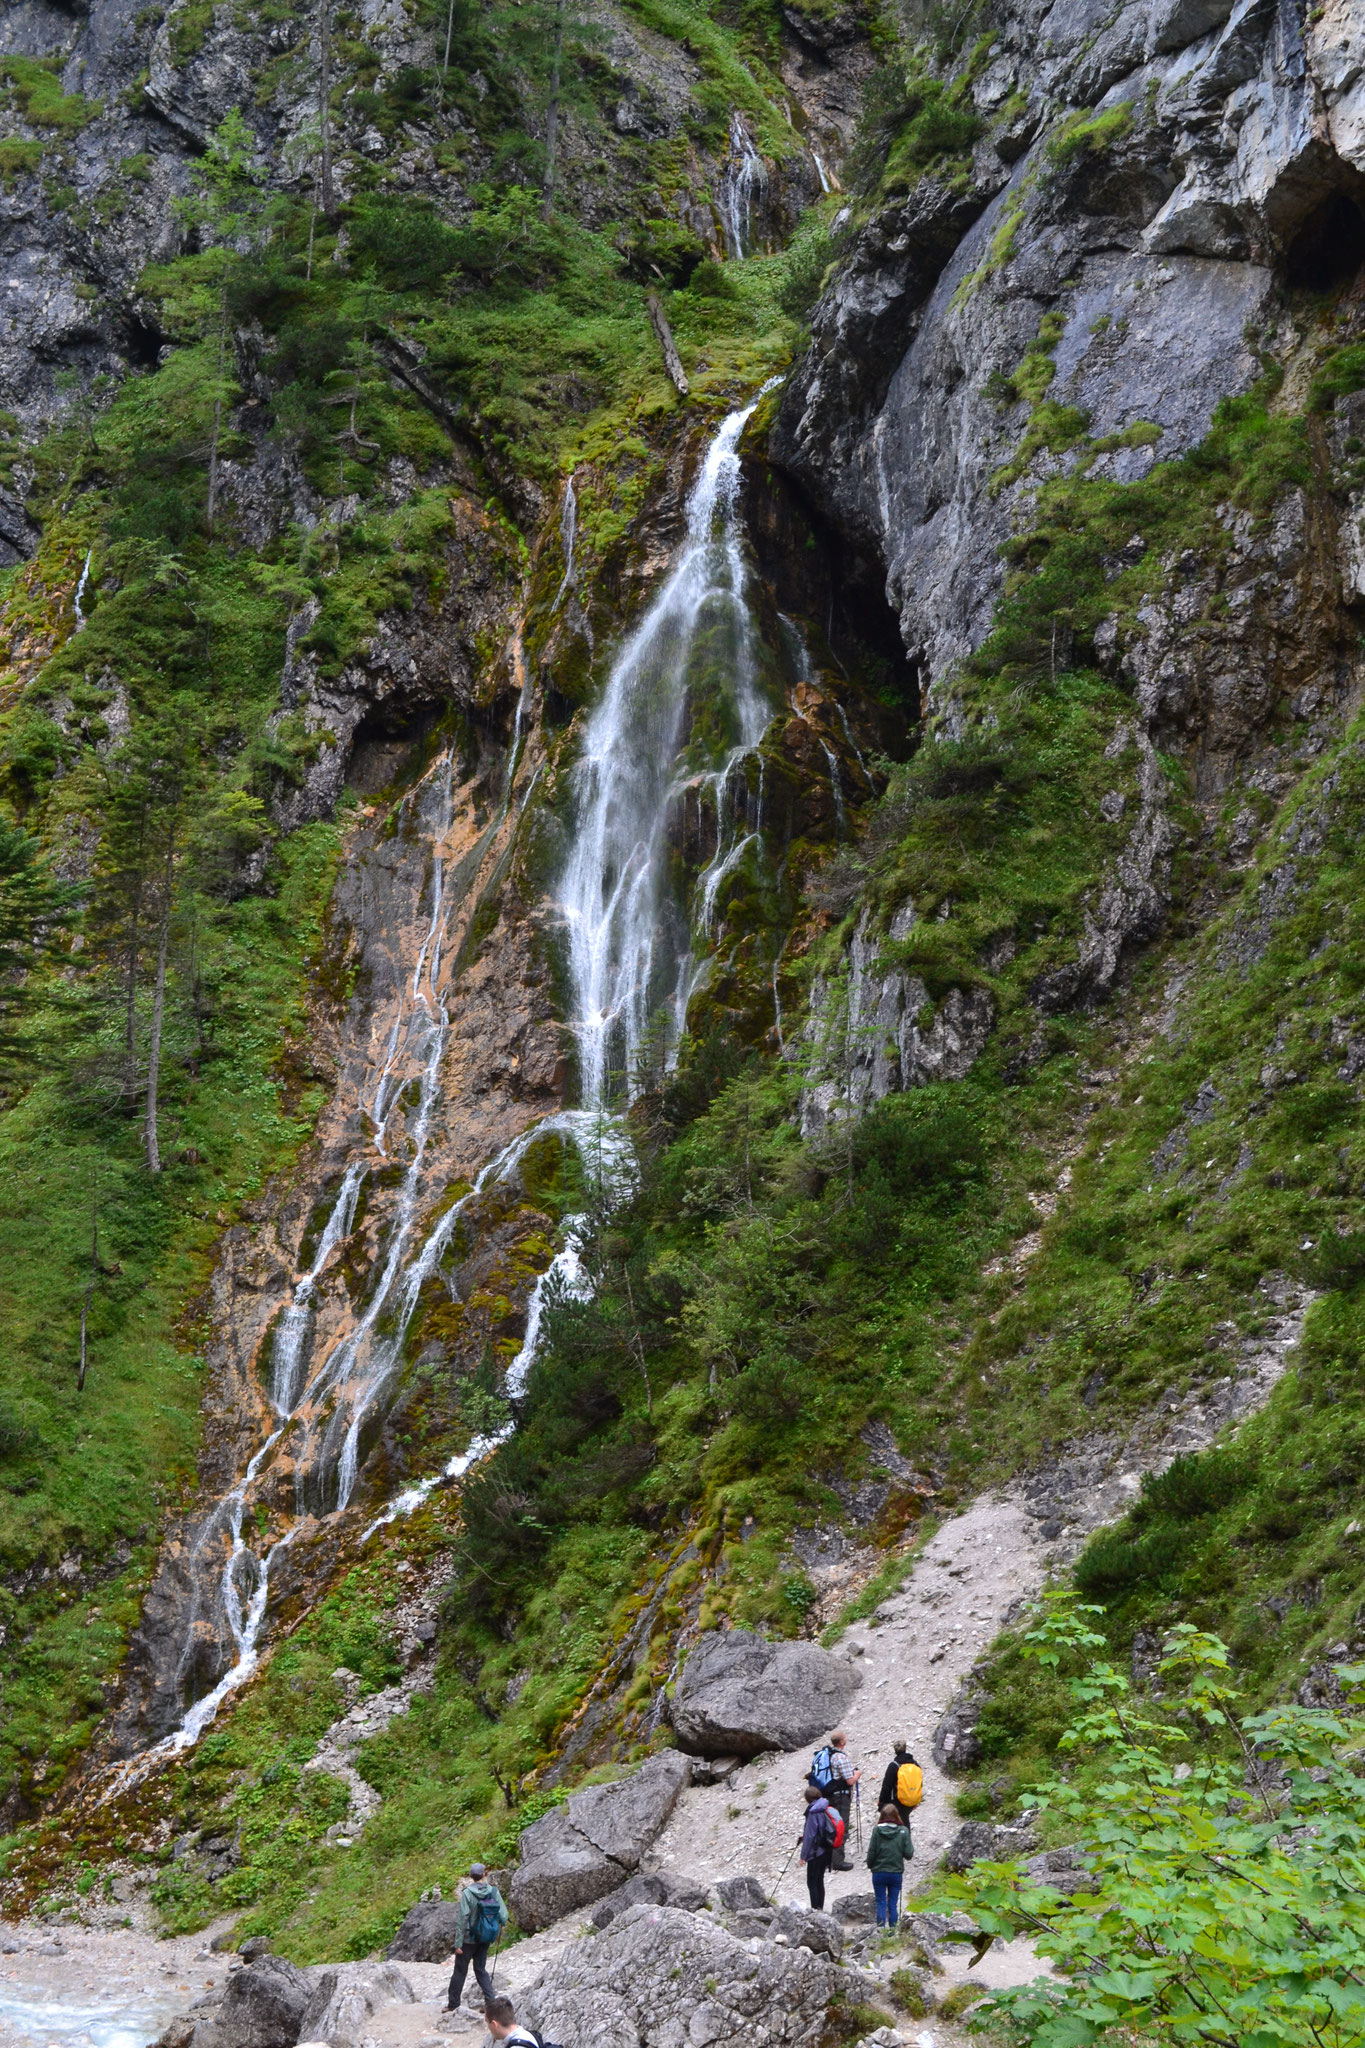 Waterfall in the Silberkarklamm